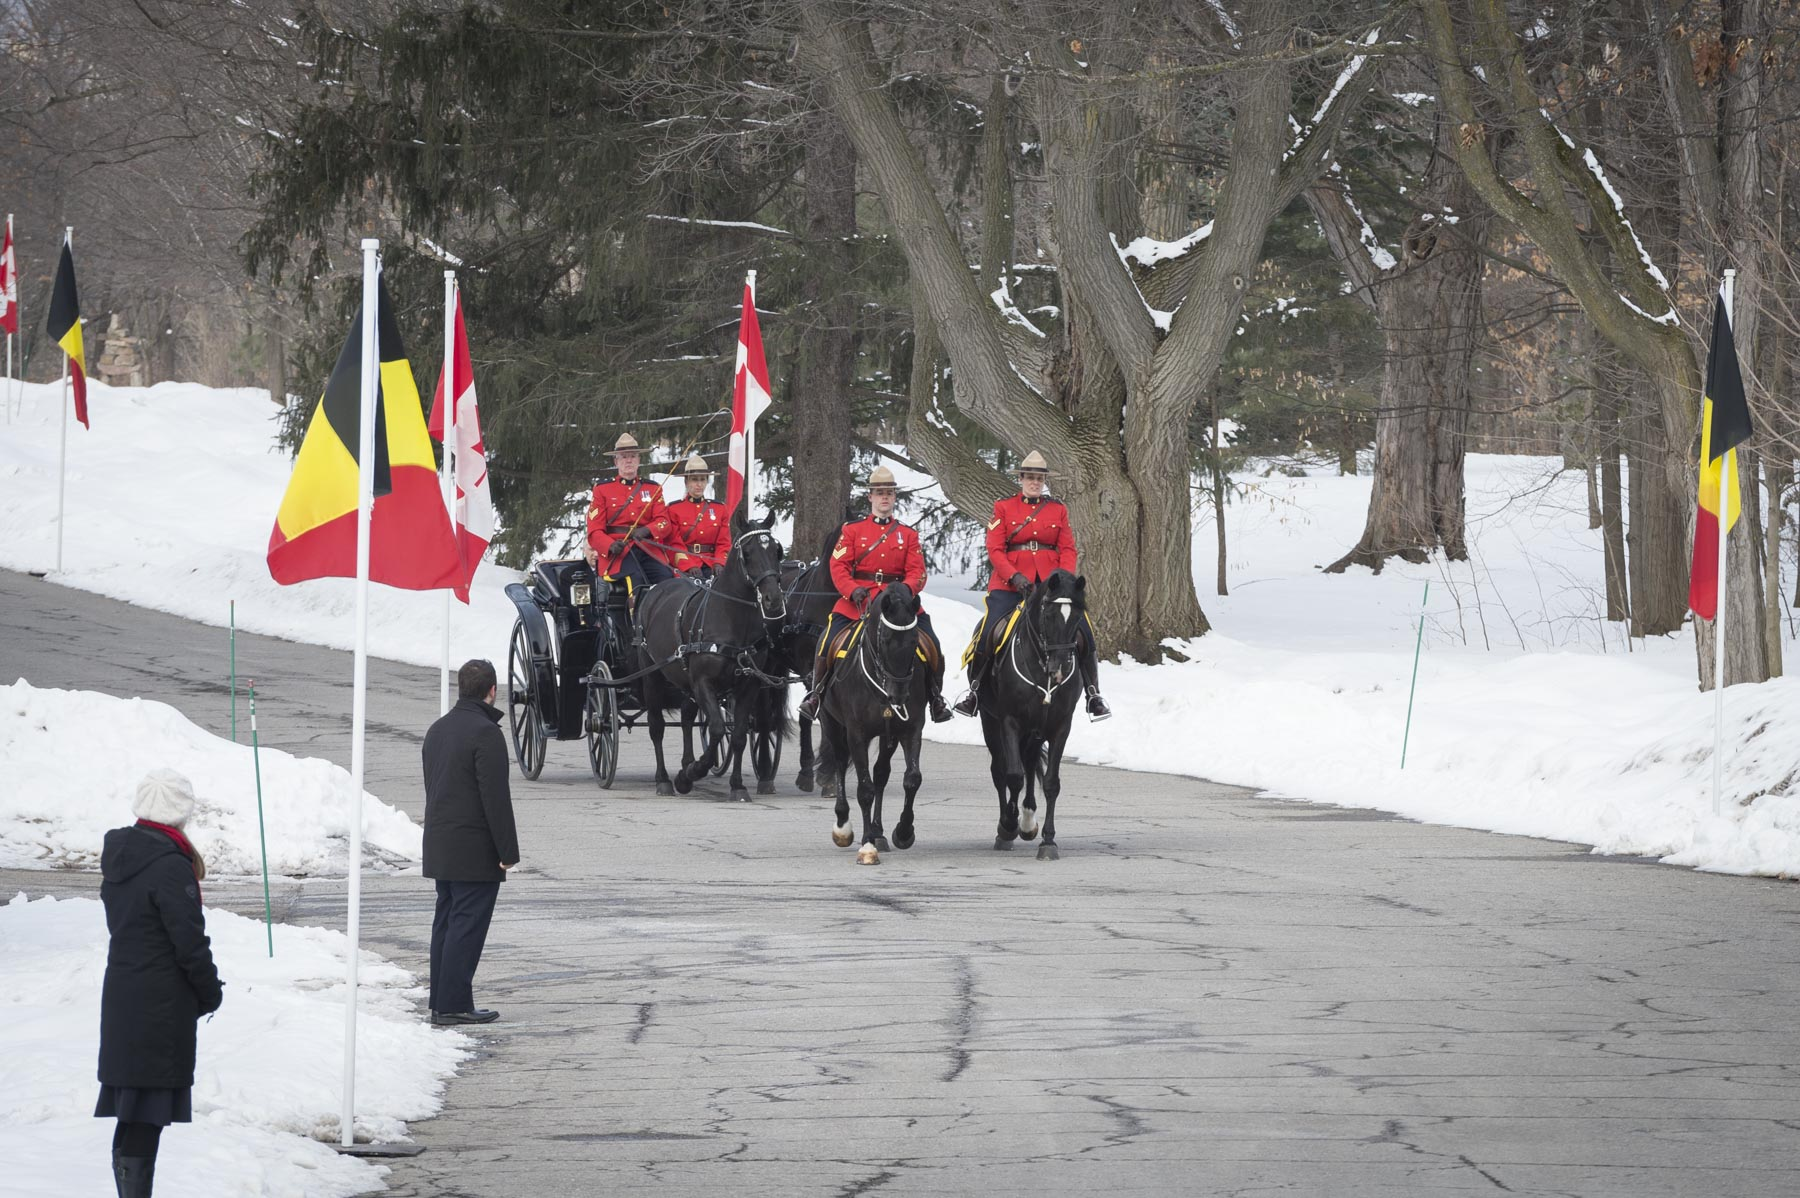 Their Majesties the King and Queen of the Belgians made their official arrival to Rideau Hall by landau. Canada was last visited by a Belgian monarch in 1977, when Their Majesties King Baudouin and Queen Fabiola undertook their State visit.